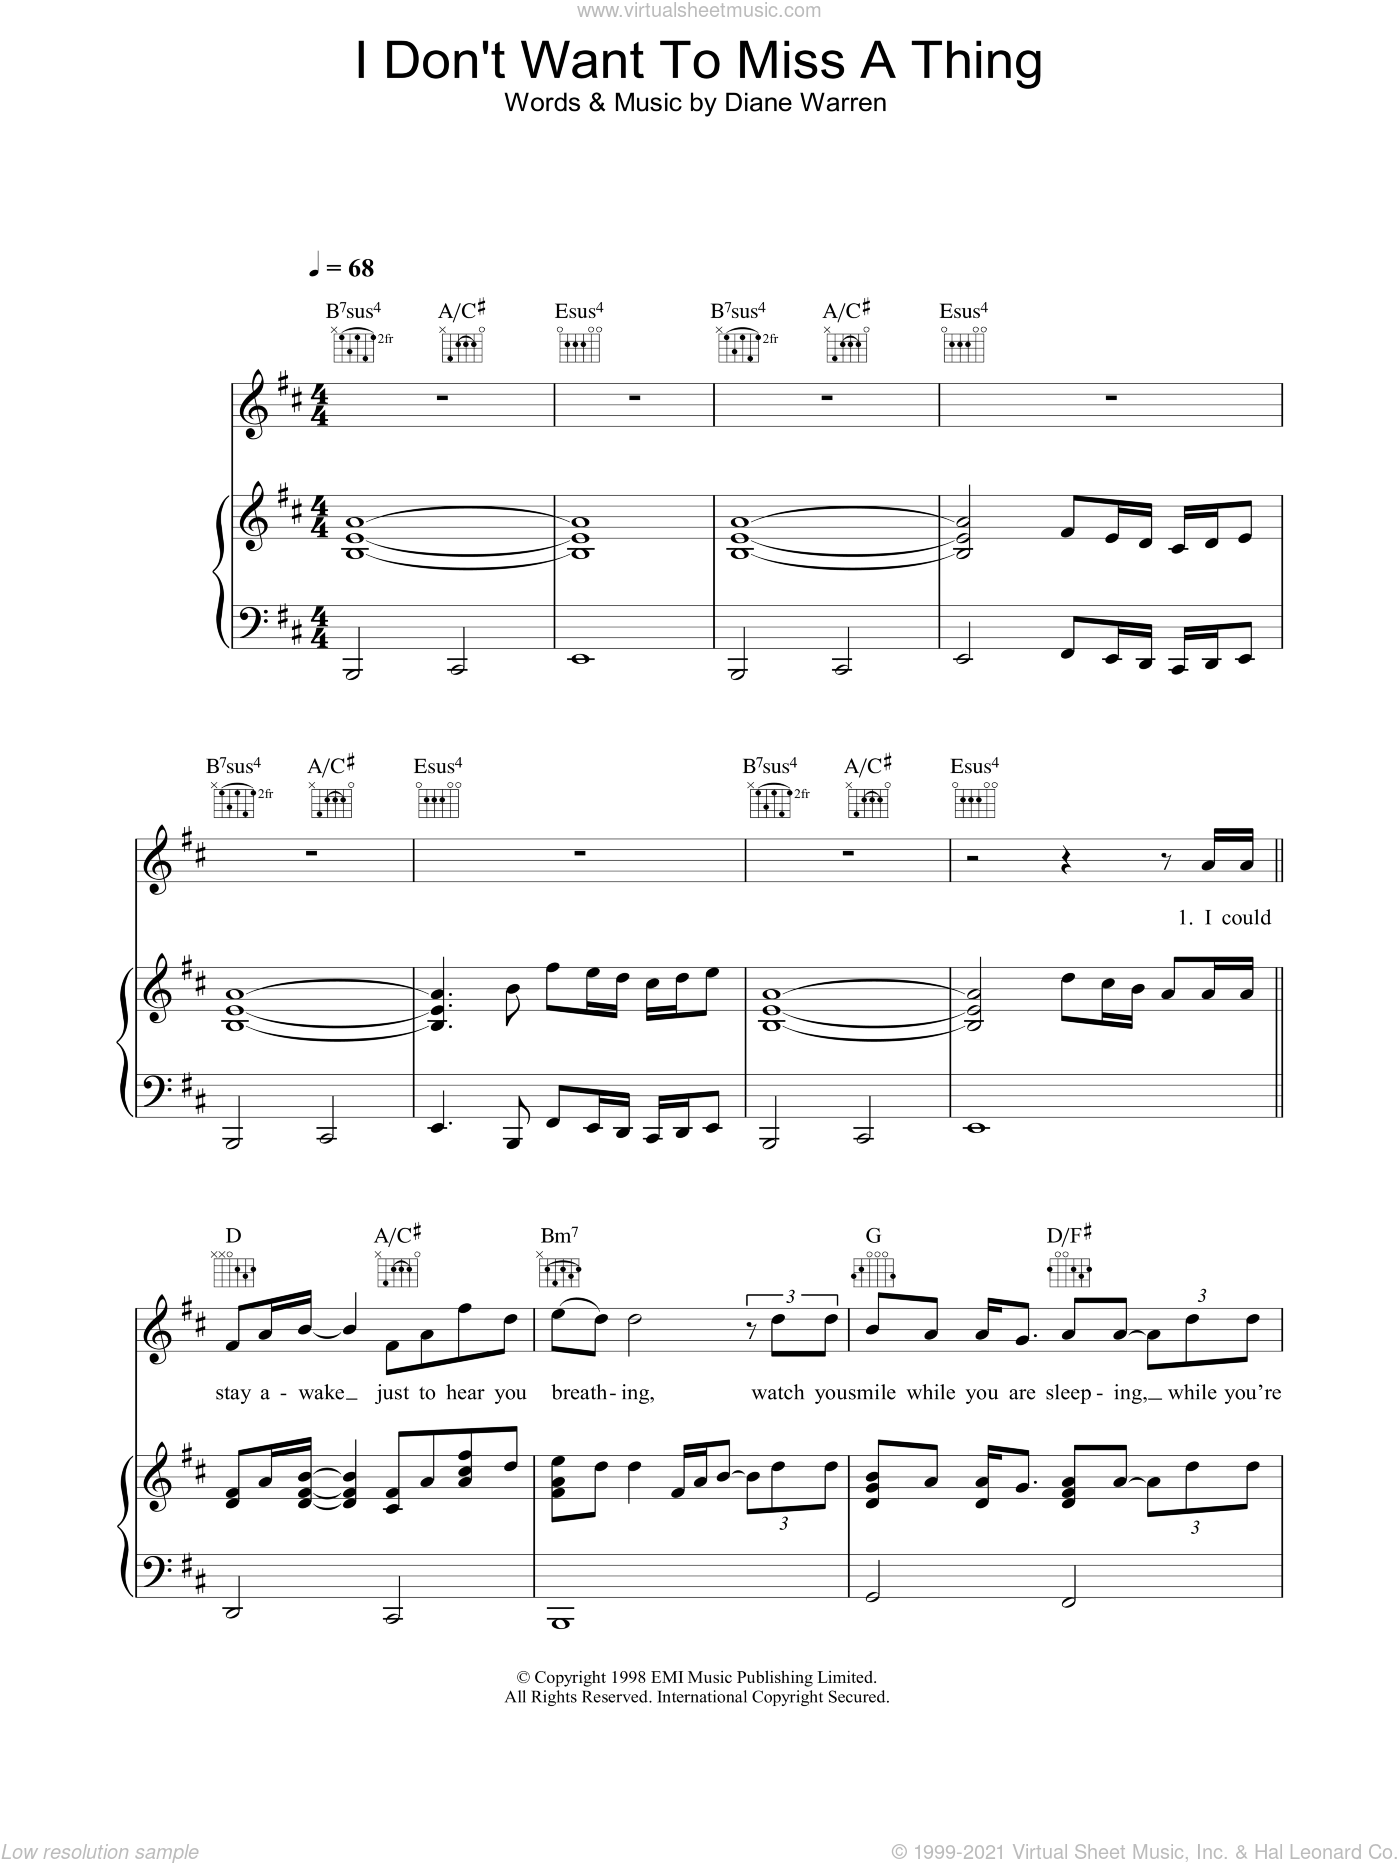 I Don't Want To Miss A Thing sheet music for voice, piano or guitar by Diane Warren and Aerosmith. Score Image Preview.